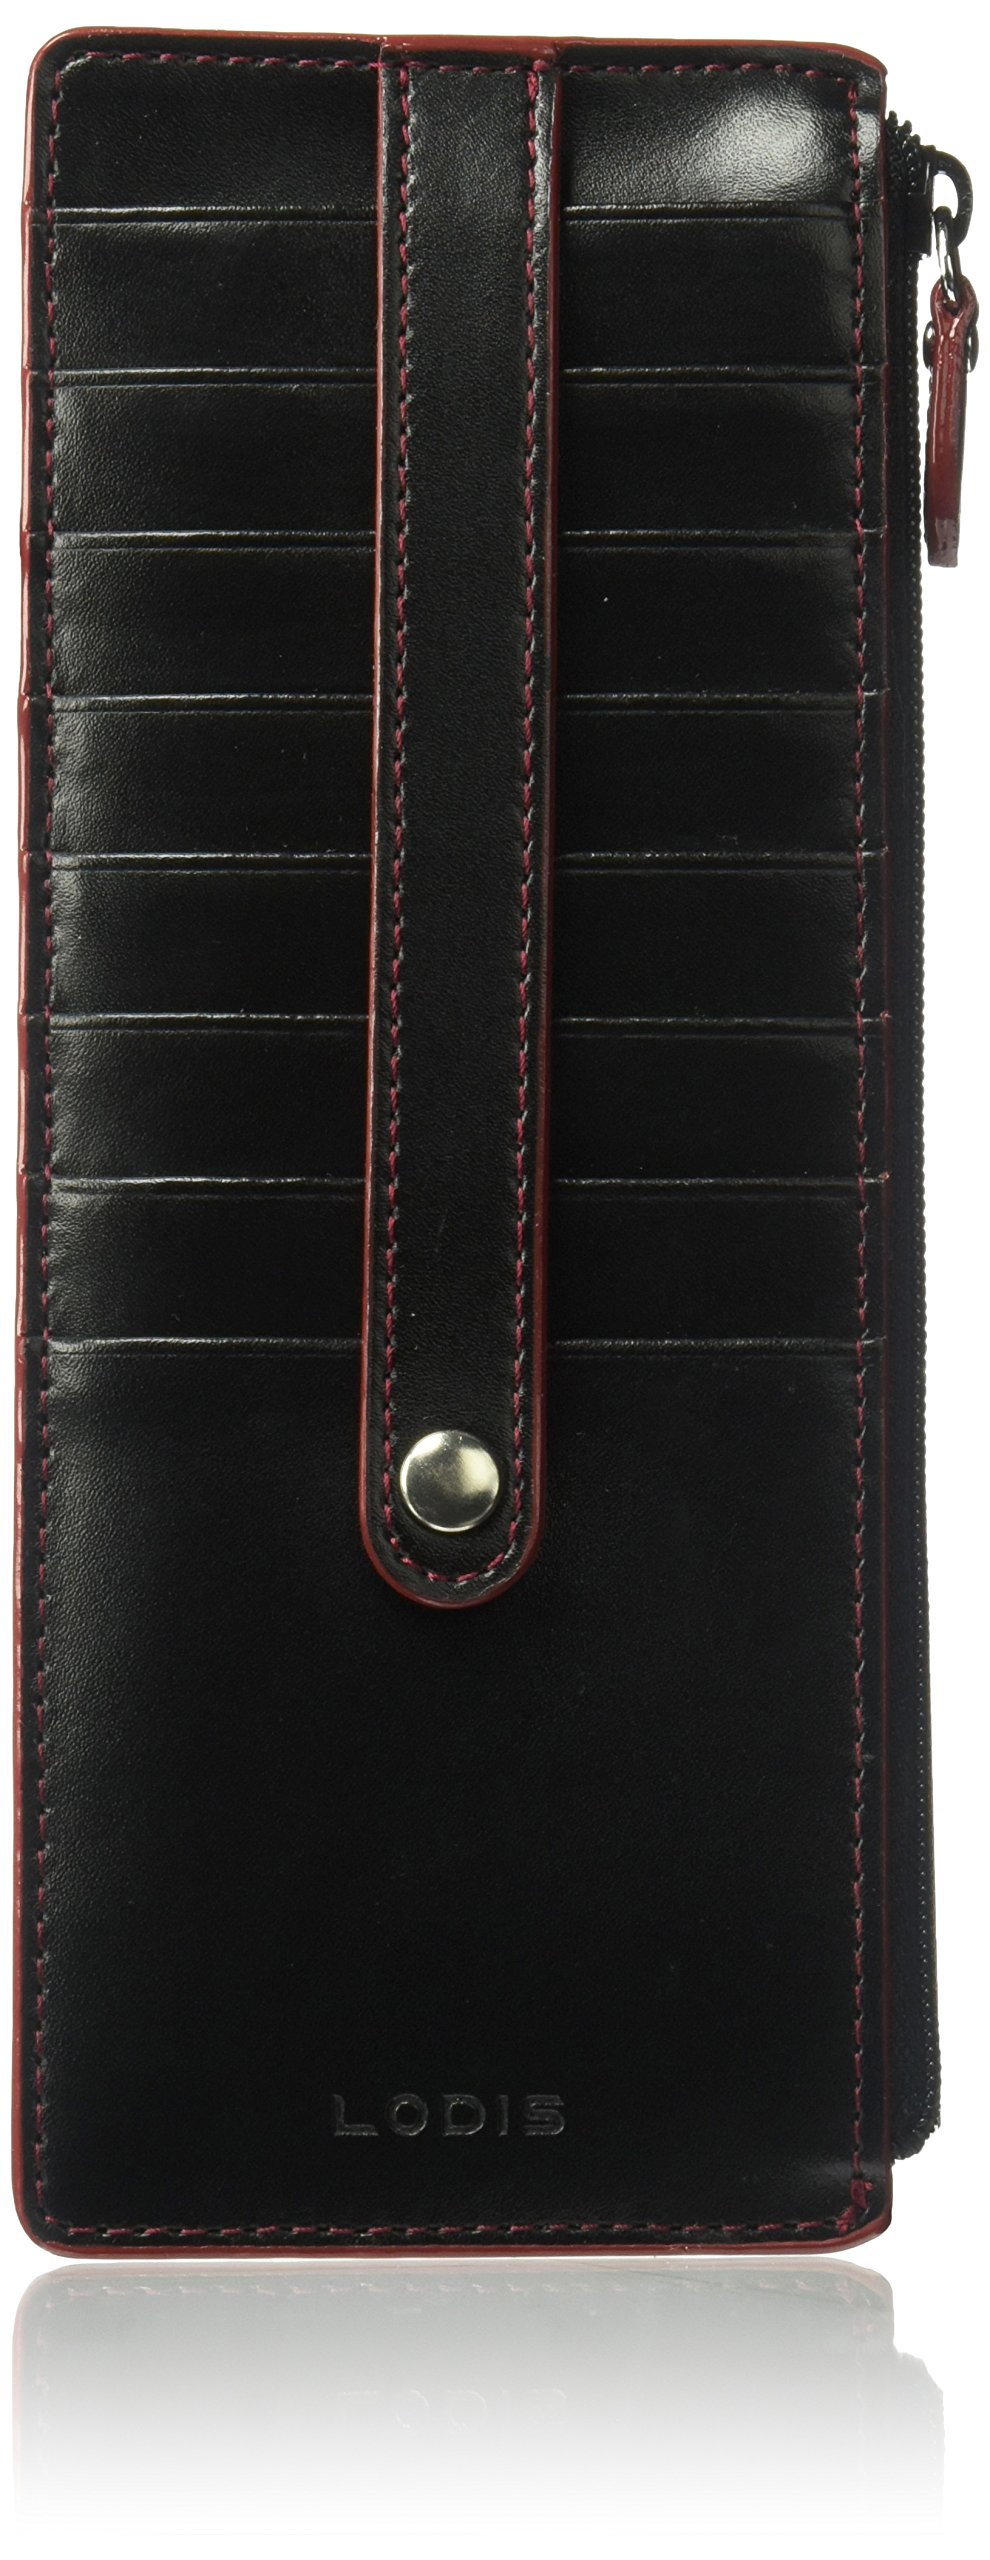 Lodis Audrey Rfid Credit Card Case With Zip Pocket Credit Card Holder by Lodis